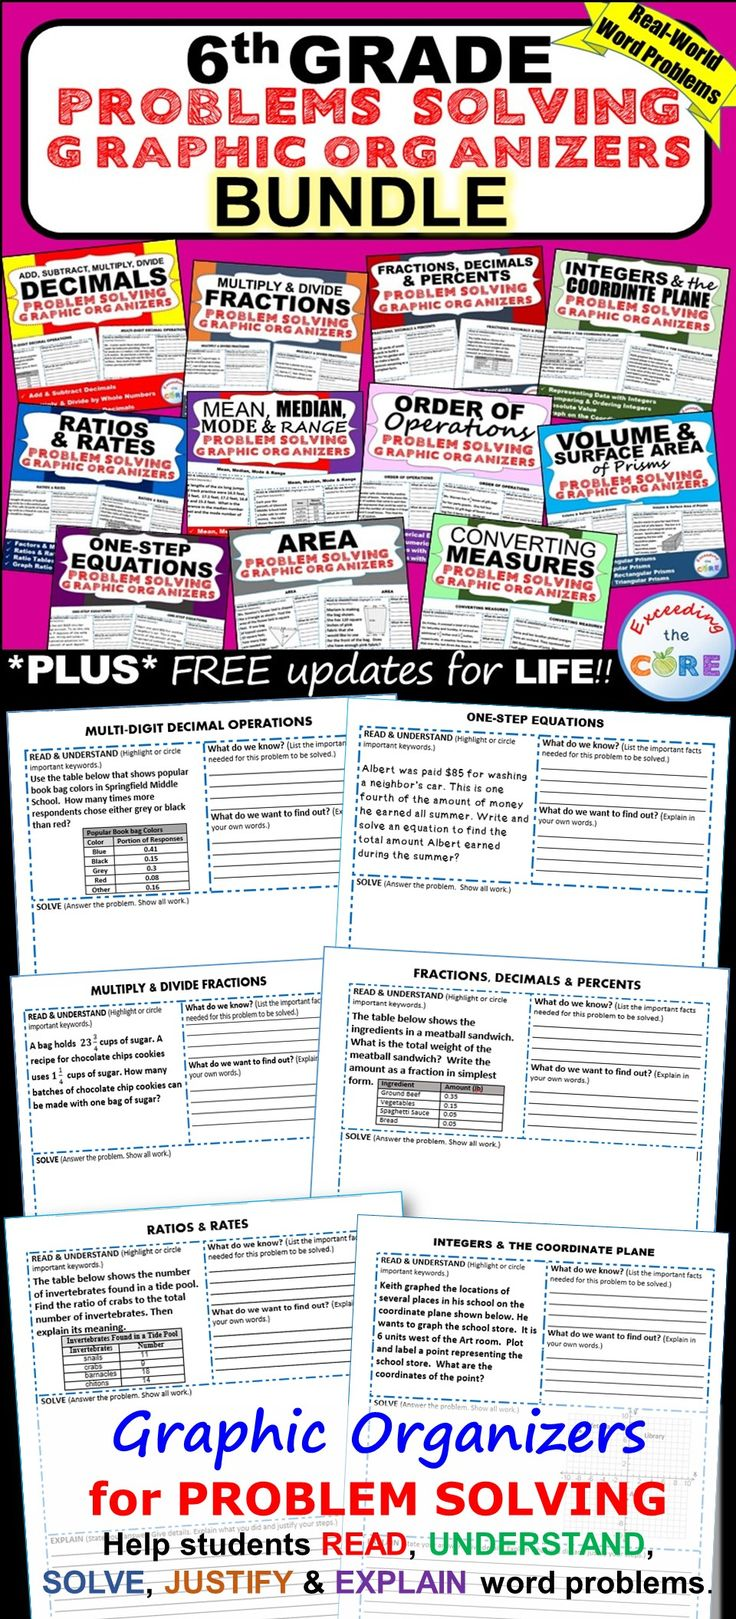 6th Grade Math PROBLEM SOLVING GRAPHIC ORGANIZER BUNDLE includes 11 sets/110 problems of real-world WORD PROBLEMS that students must solve & explain using problem-solving strategies. Topics: Fractions, Decimals & Percents, Operations with Decimals, Ratios & Rates, Multiply & Divide Fractions, Order of Operations, Converting Measures, One-Step Equations, Integers & the Coordinate Plane   Area of Triangles, Parallelograms & Trapezoids,  Volume & Surface Area of Prisms, Mean, Median, Mode…